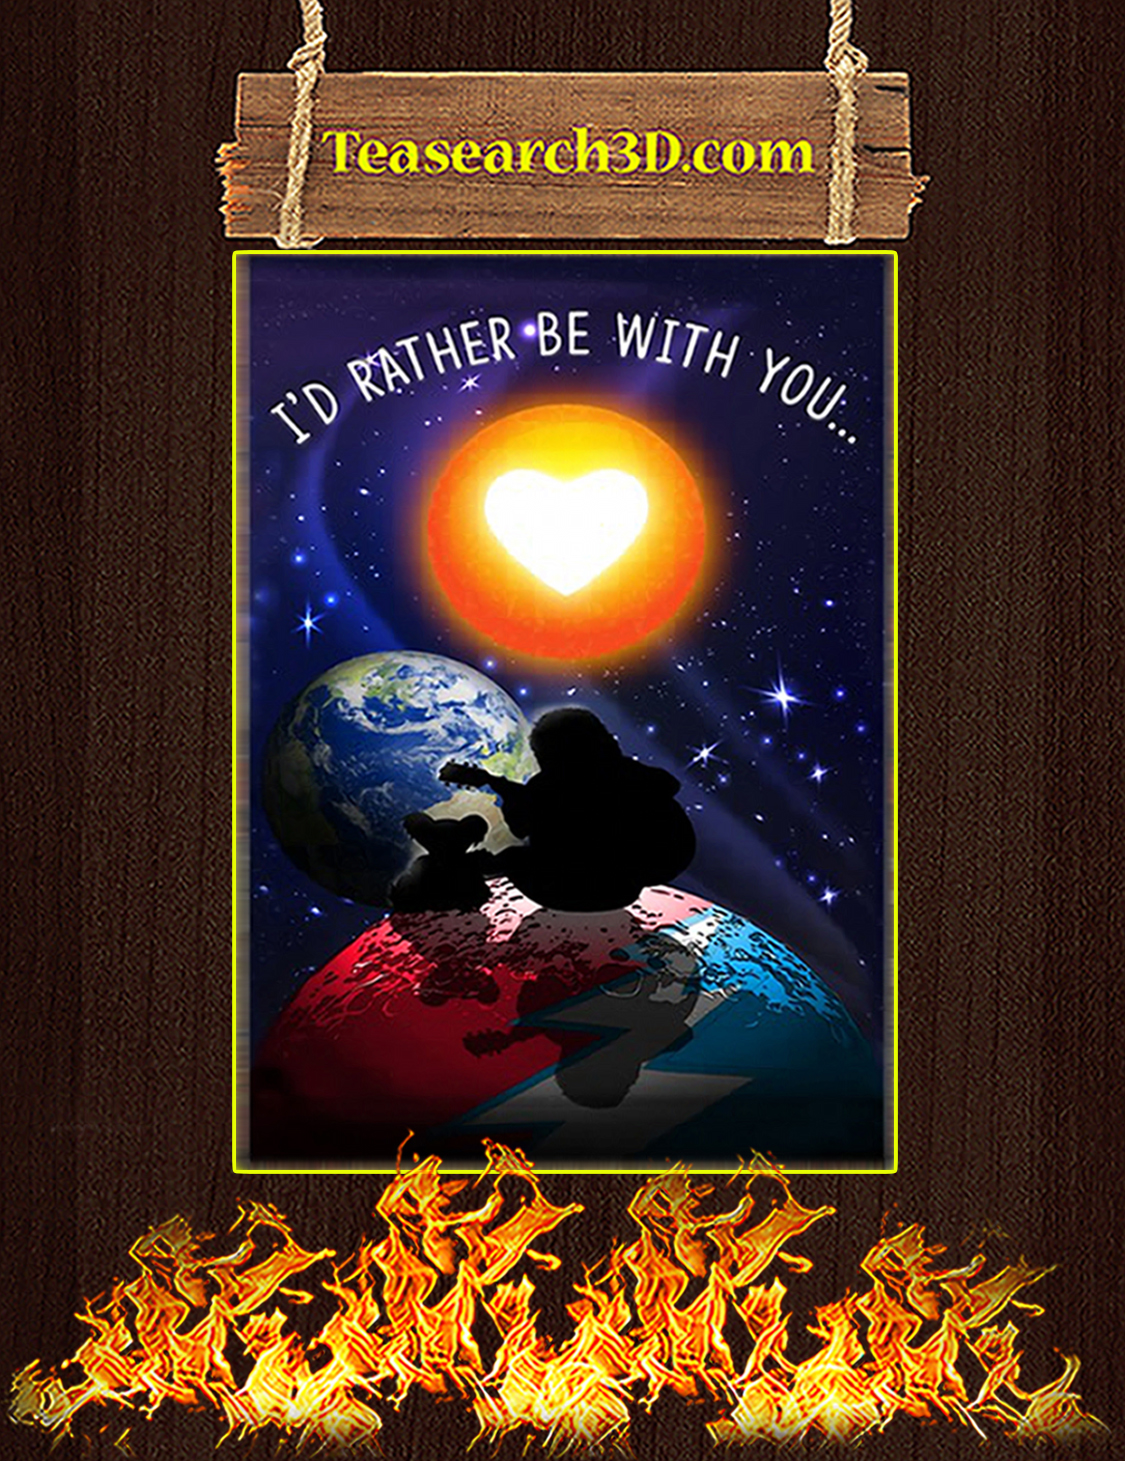 I'd rather be with you steven universe poster A3